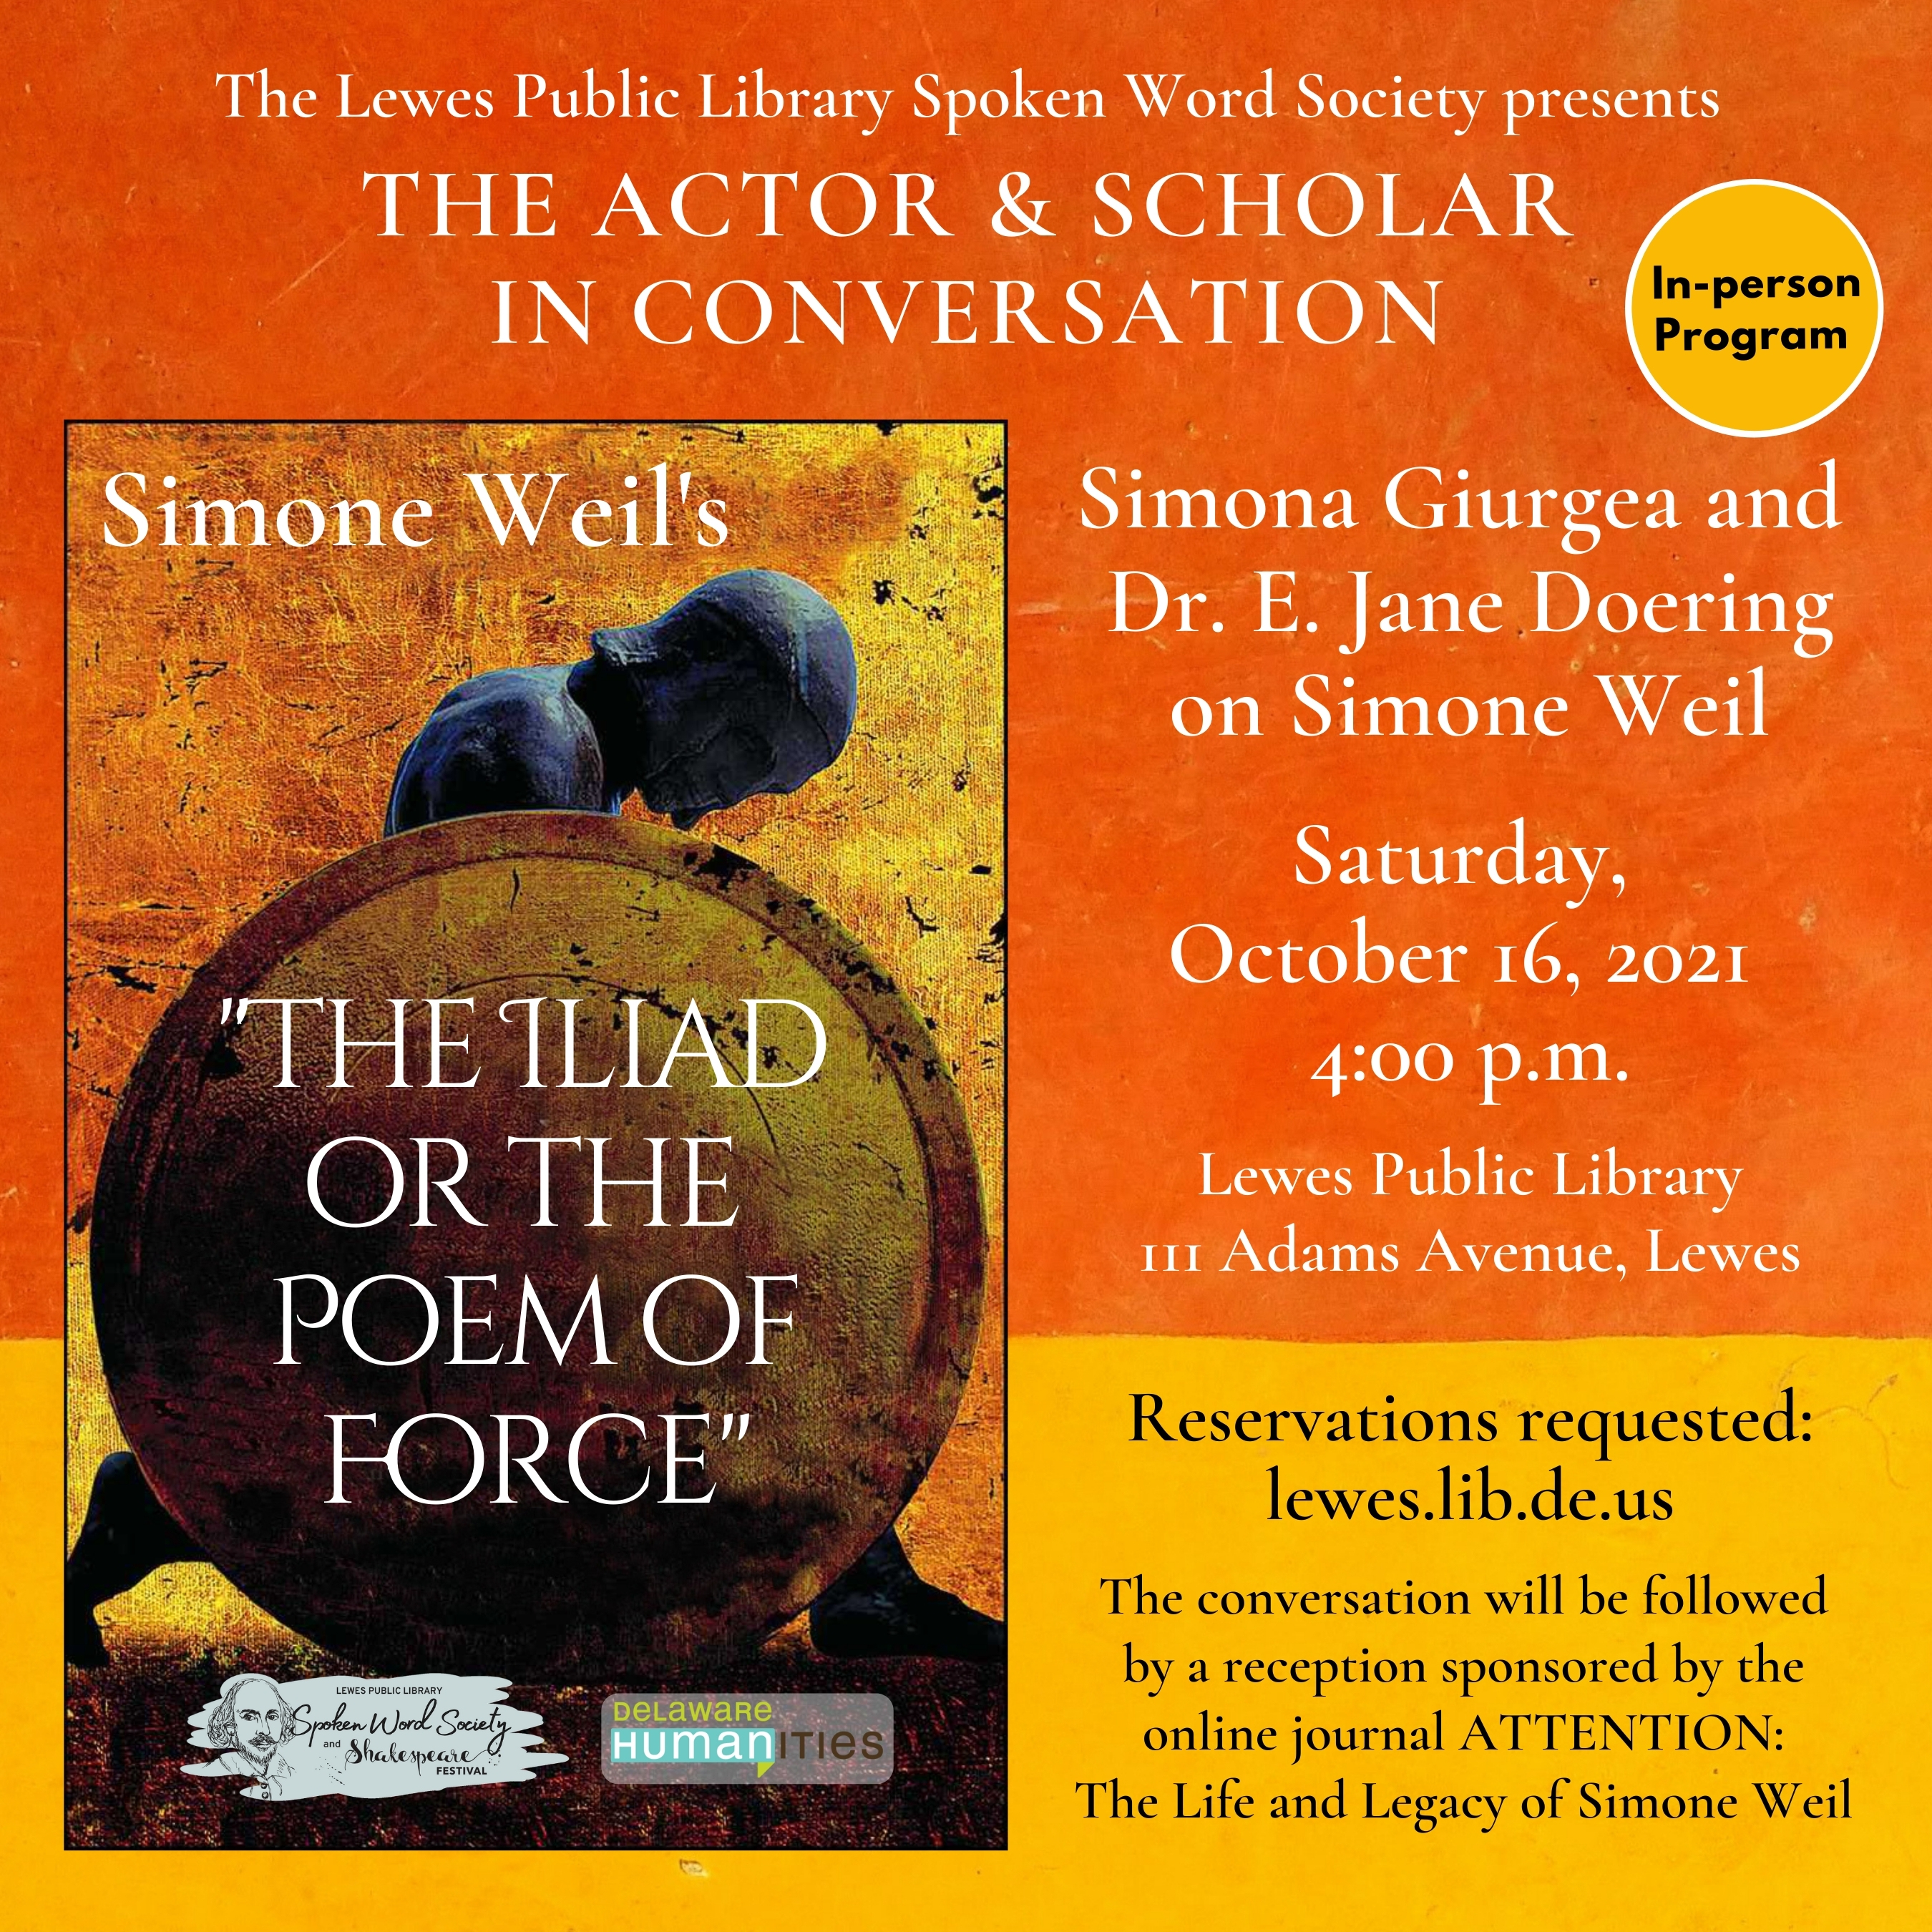 5th Annual Shakespeare Festival: The Actor and Scholar in Conversation: Simona Giurgea and E. Jane Doering on Simone Weil @ Lewes Public Library